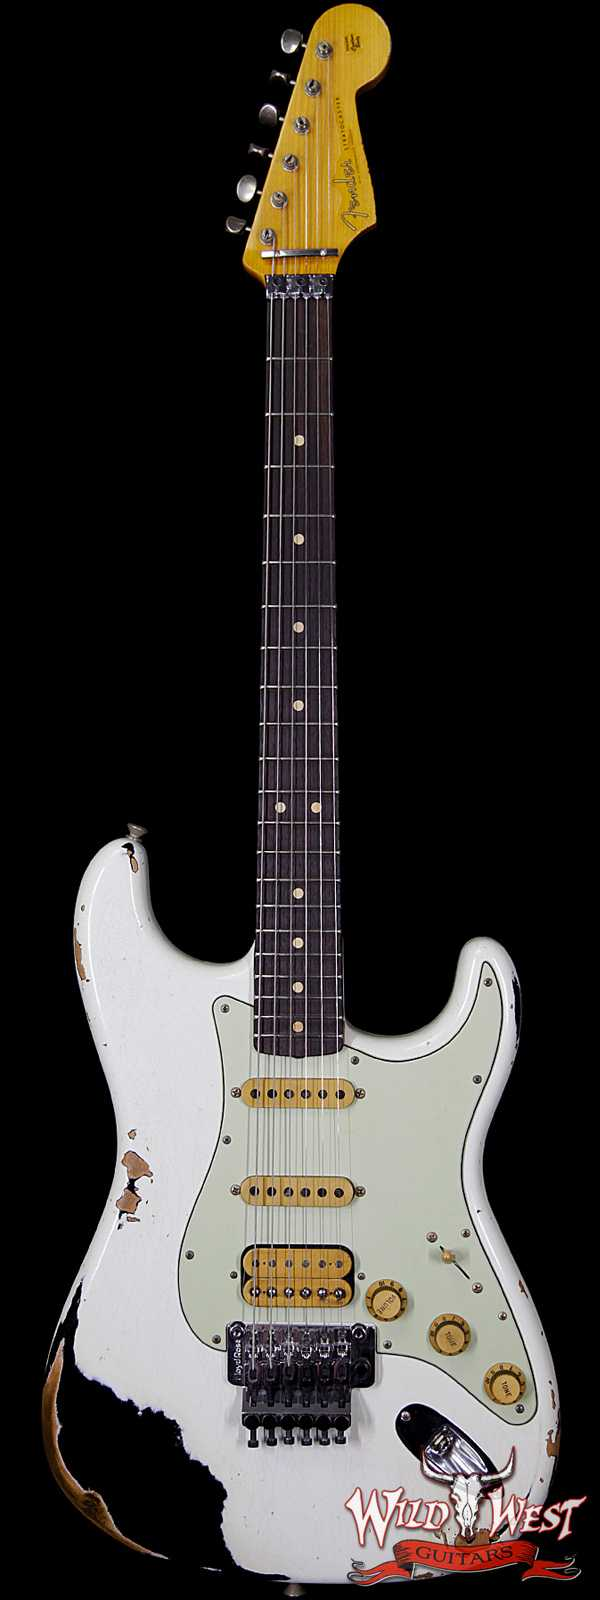 Fender Custom Shop White Lightning FR HSS Stratocaster Heavy Relic Rosewood 21 Frets OWT over Black